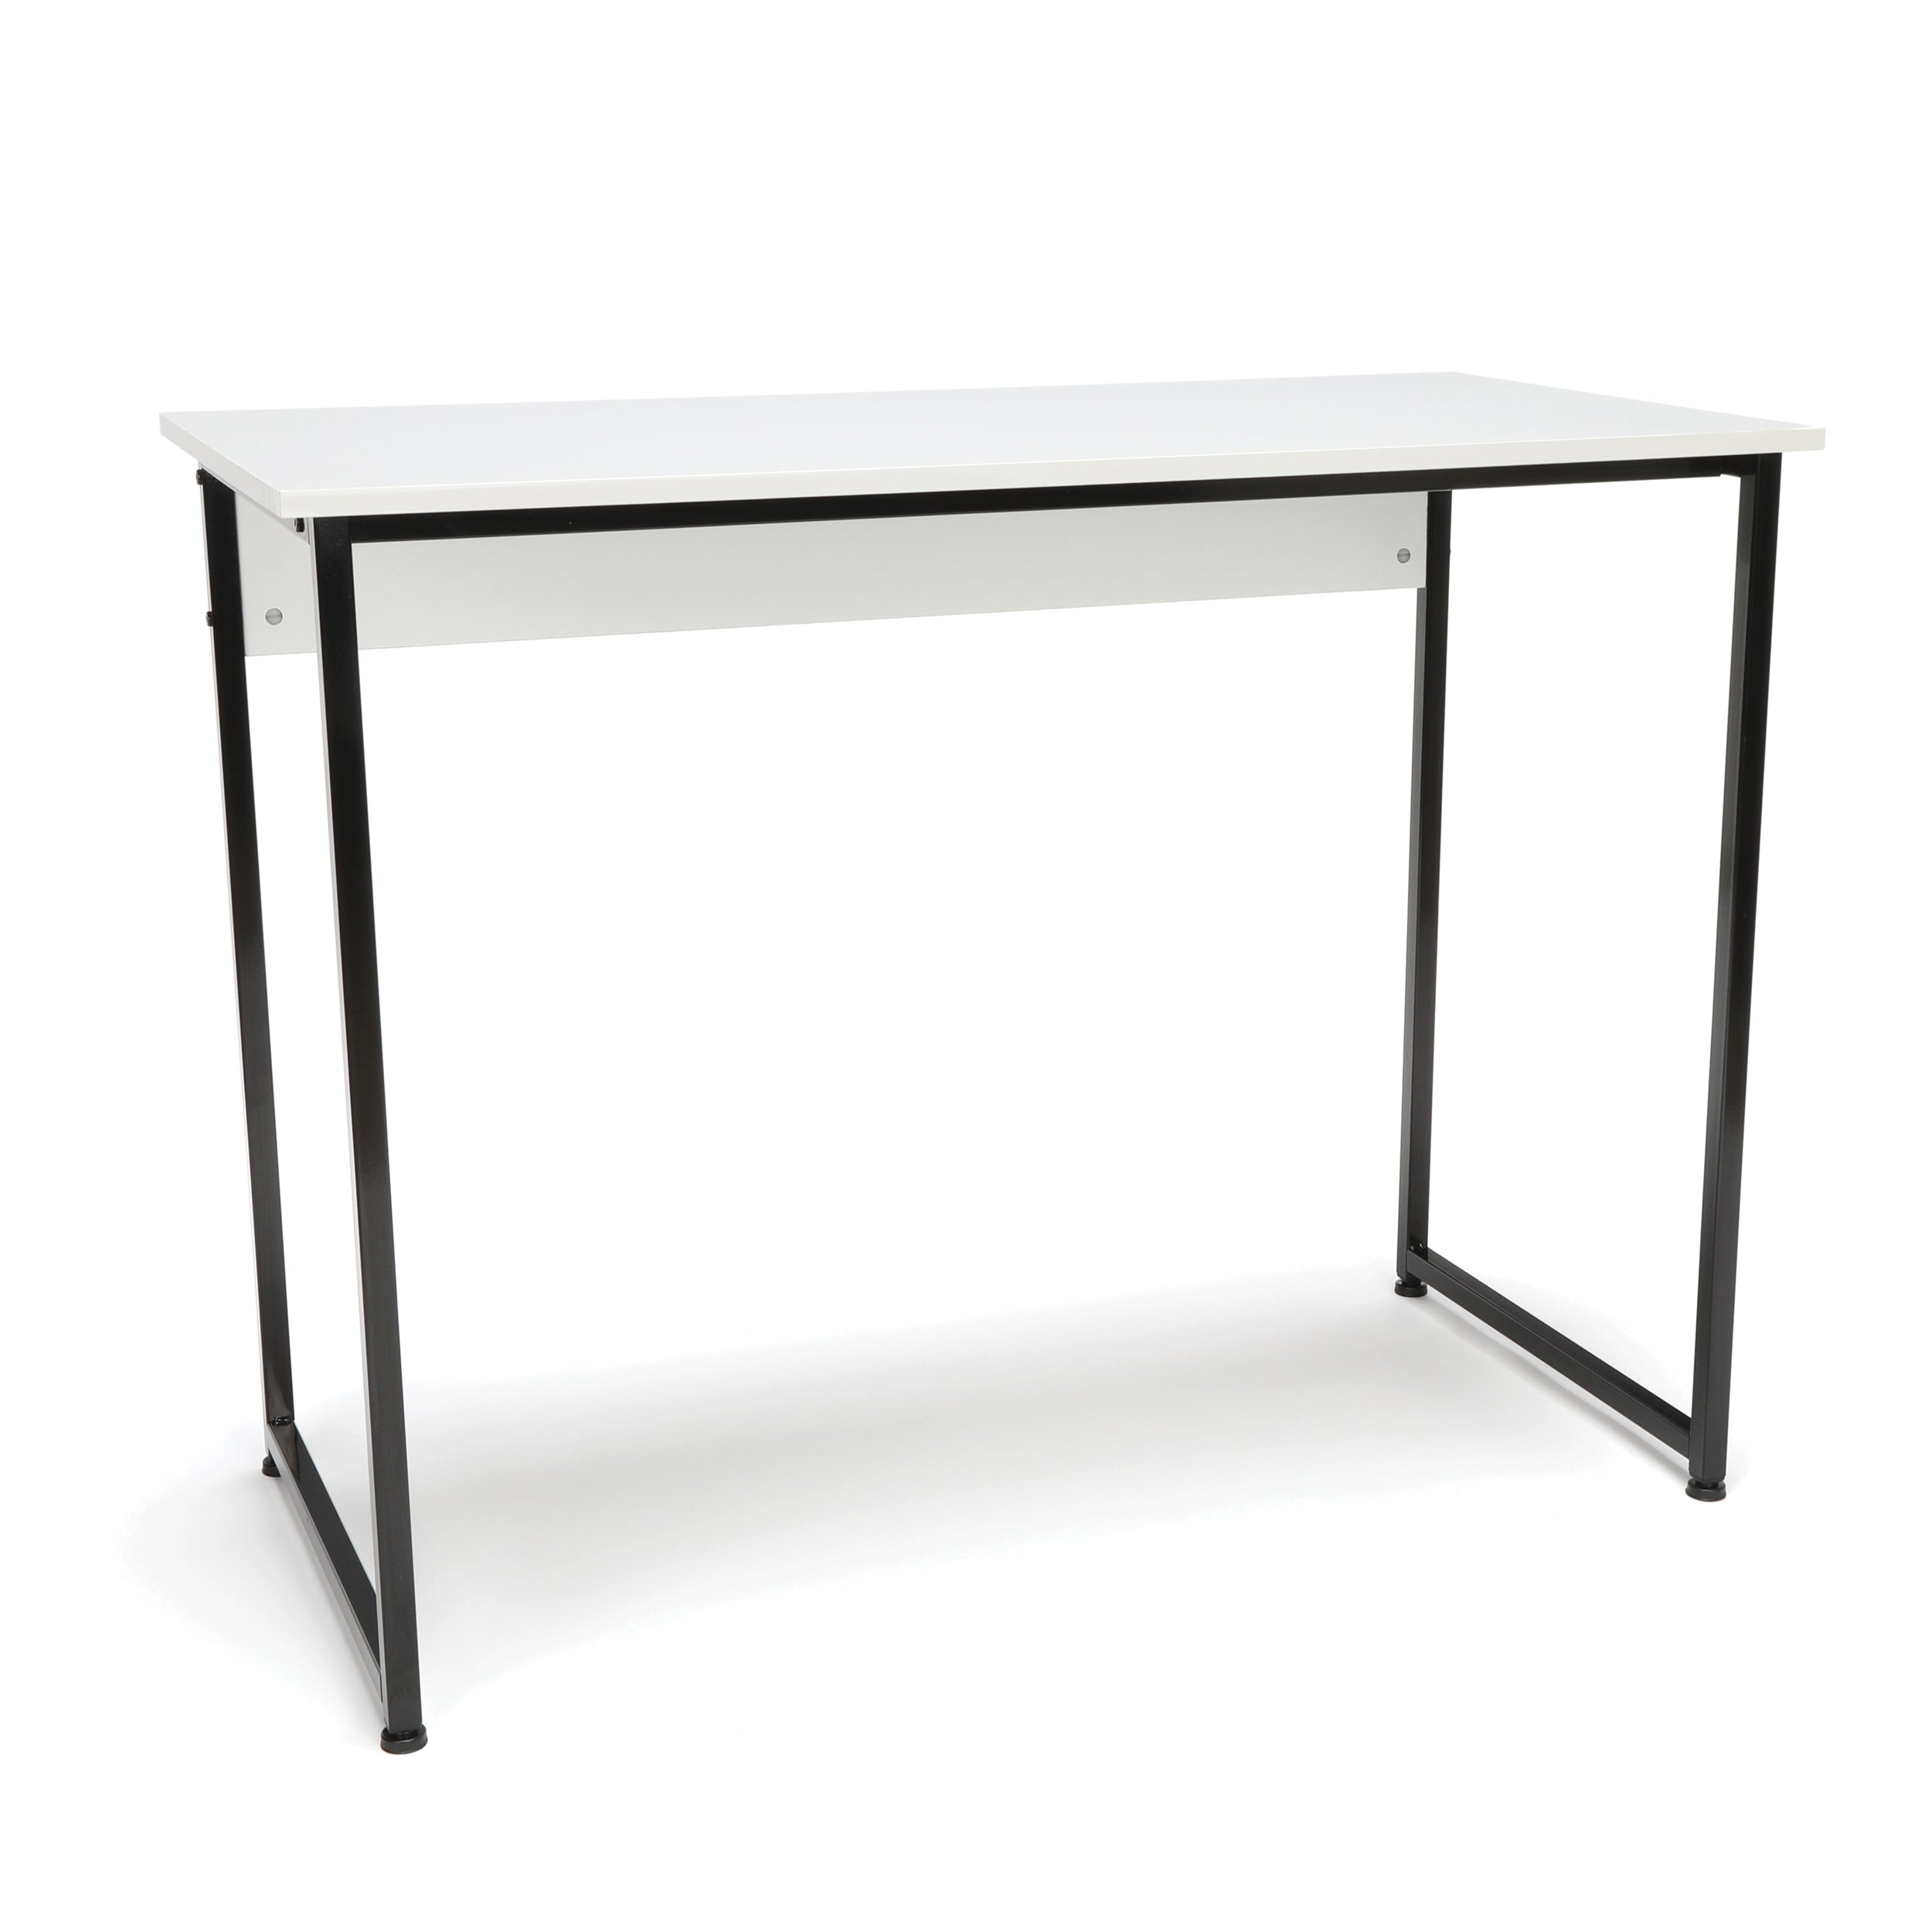 Ofminc Model ESS-1040 Essentials Computer Desk with Metal Leg